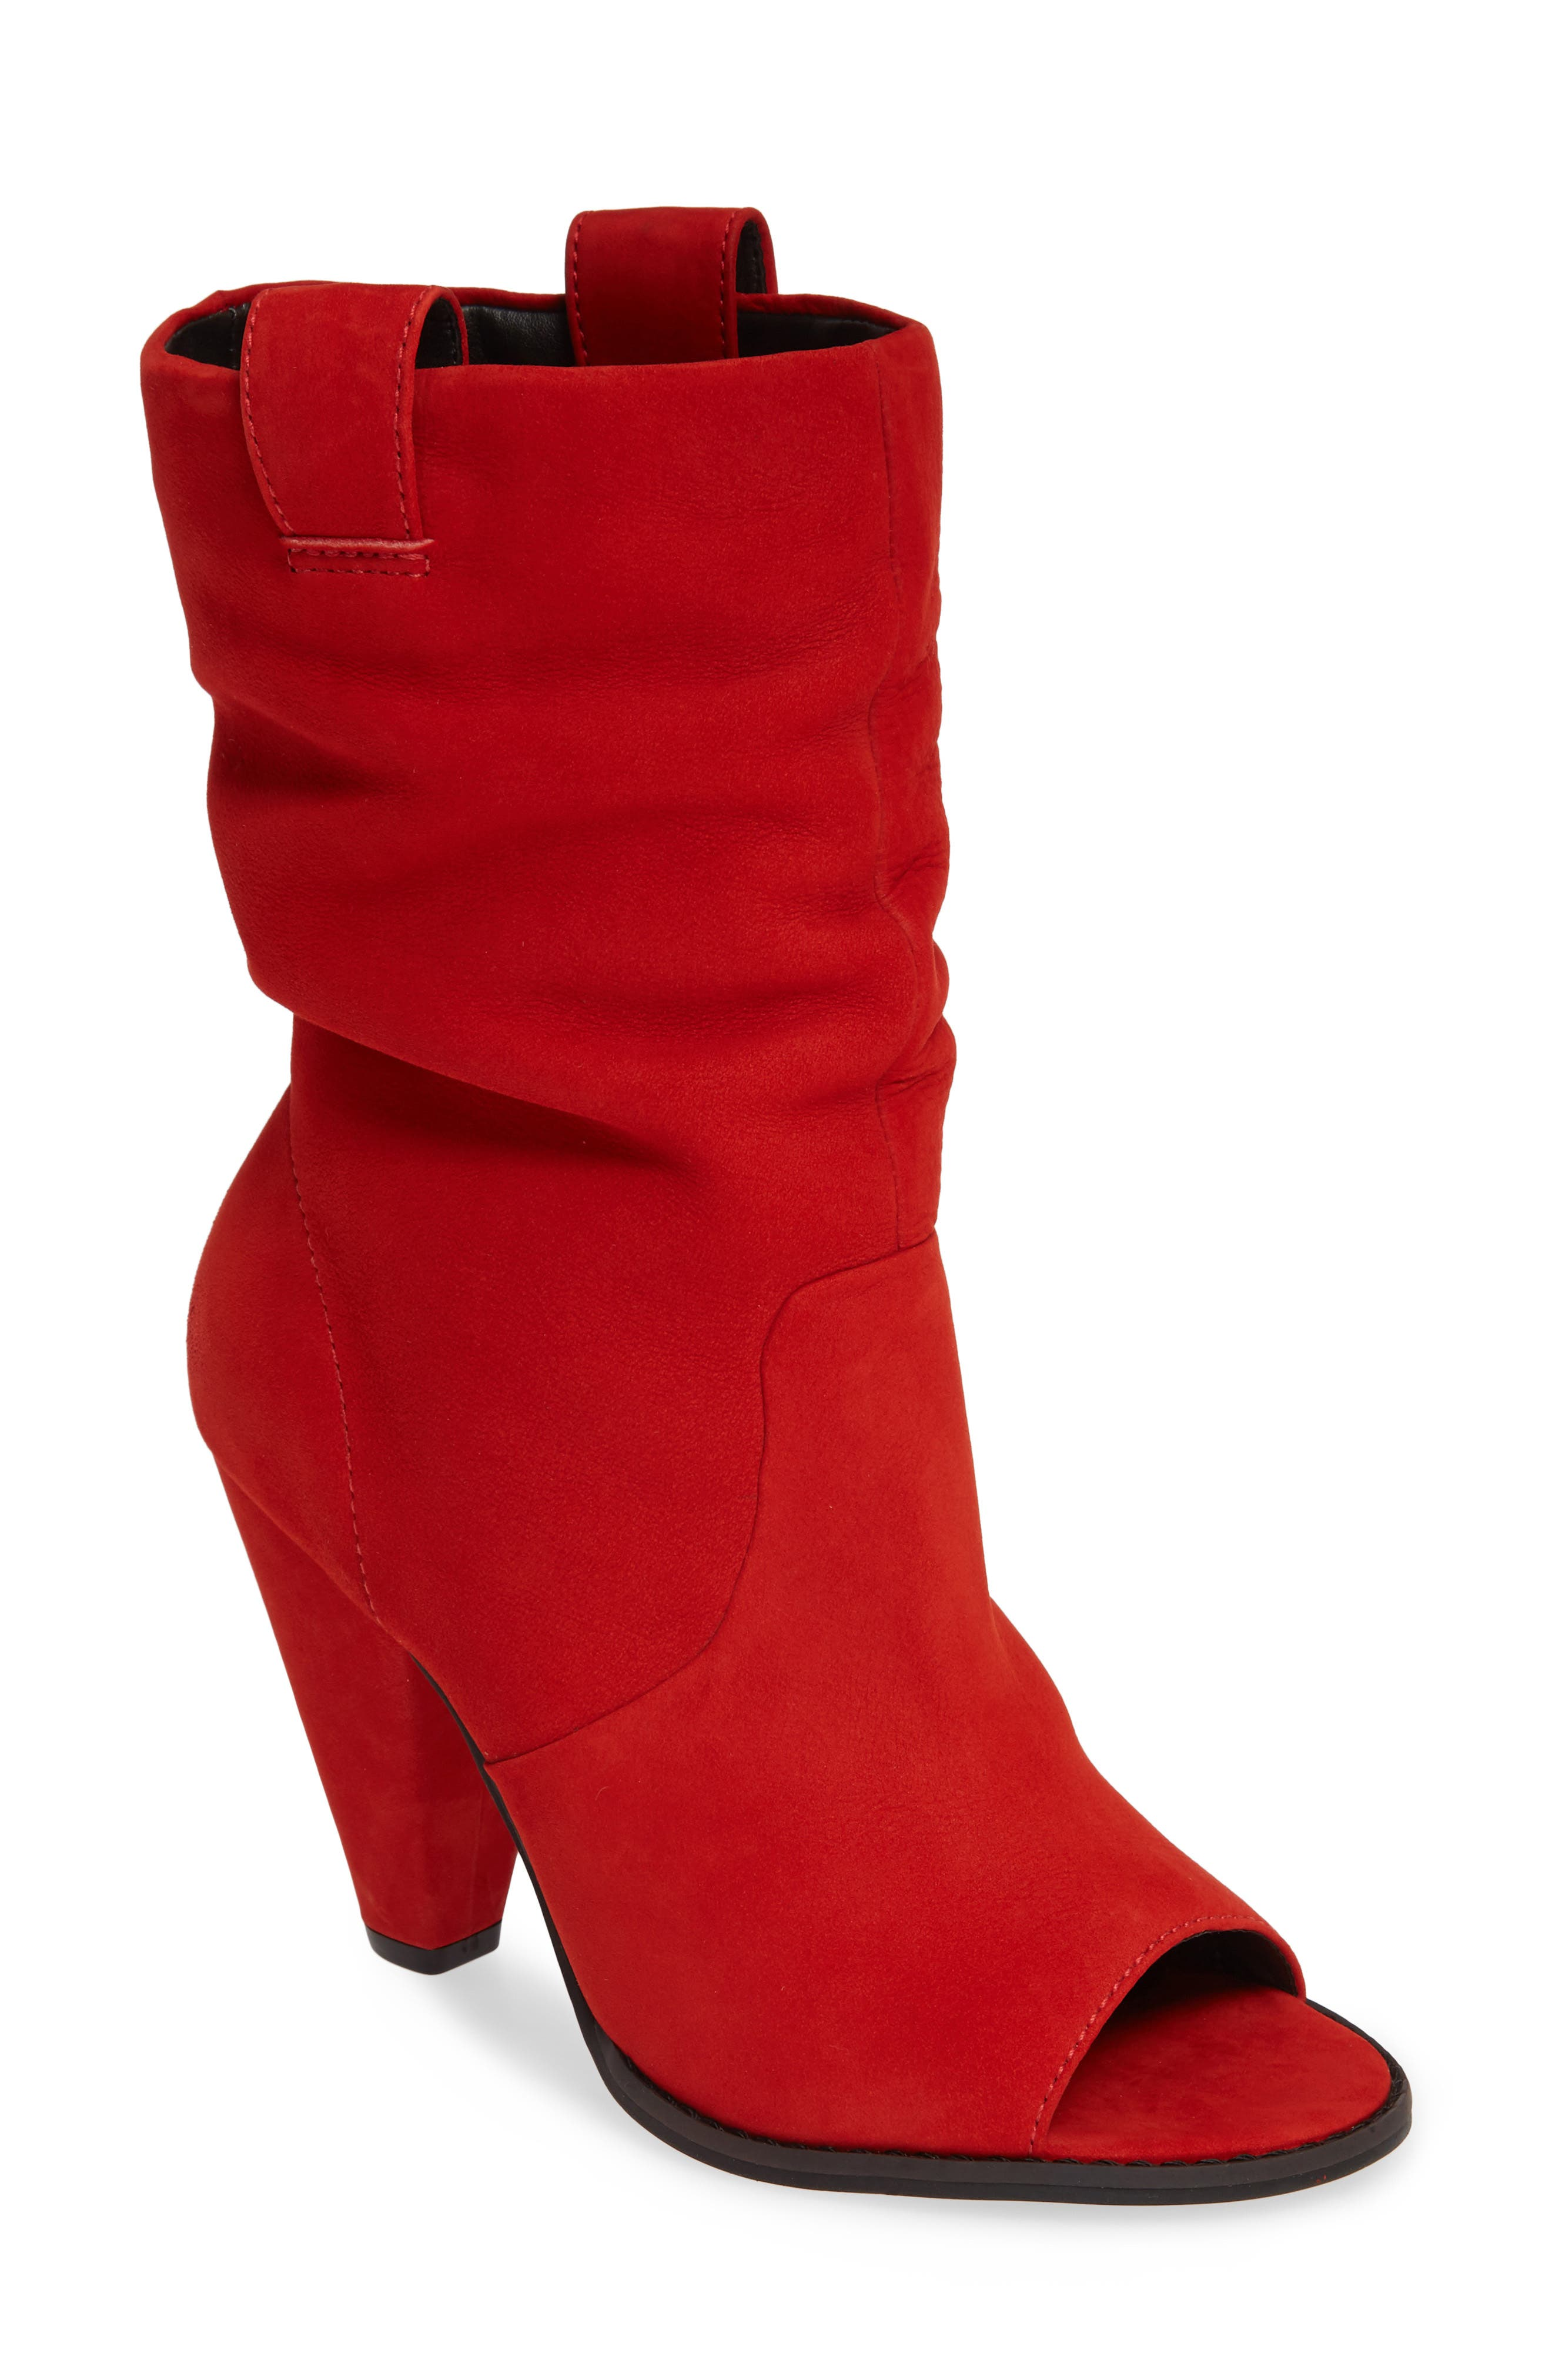 LUST FOR LIFE Cleo Open Toe Bootie in Crimson Nubuck Leather